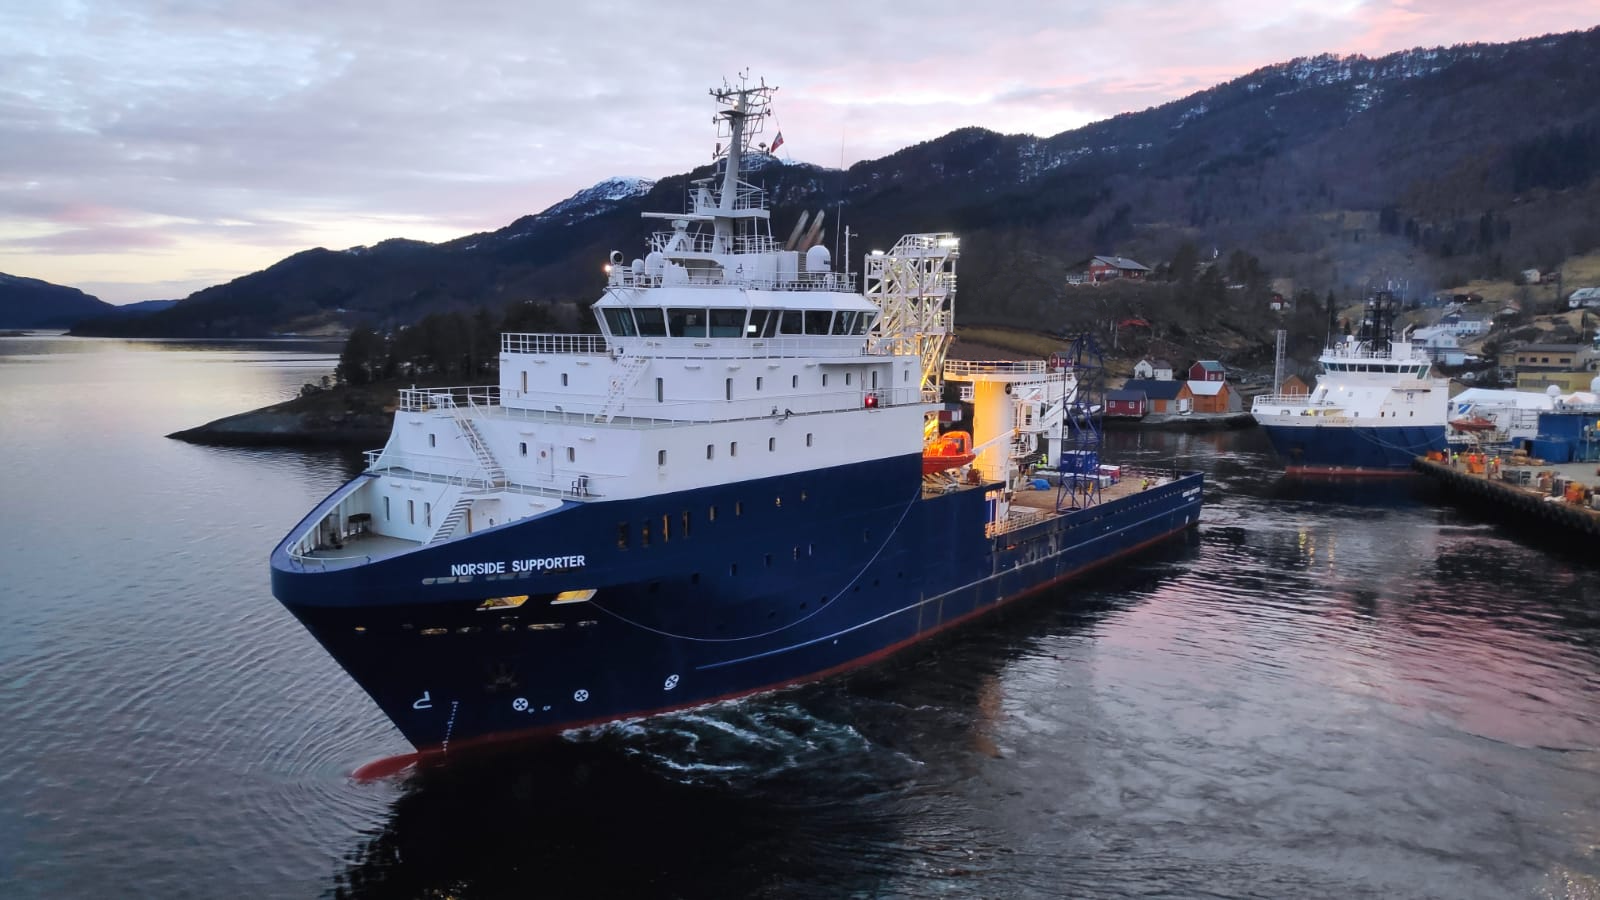 Norside Wind chooses SMST's long term W2W solution